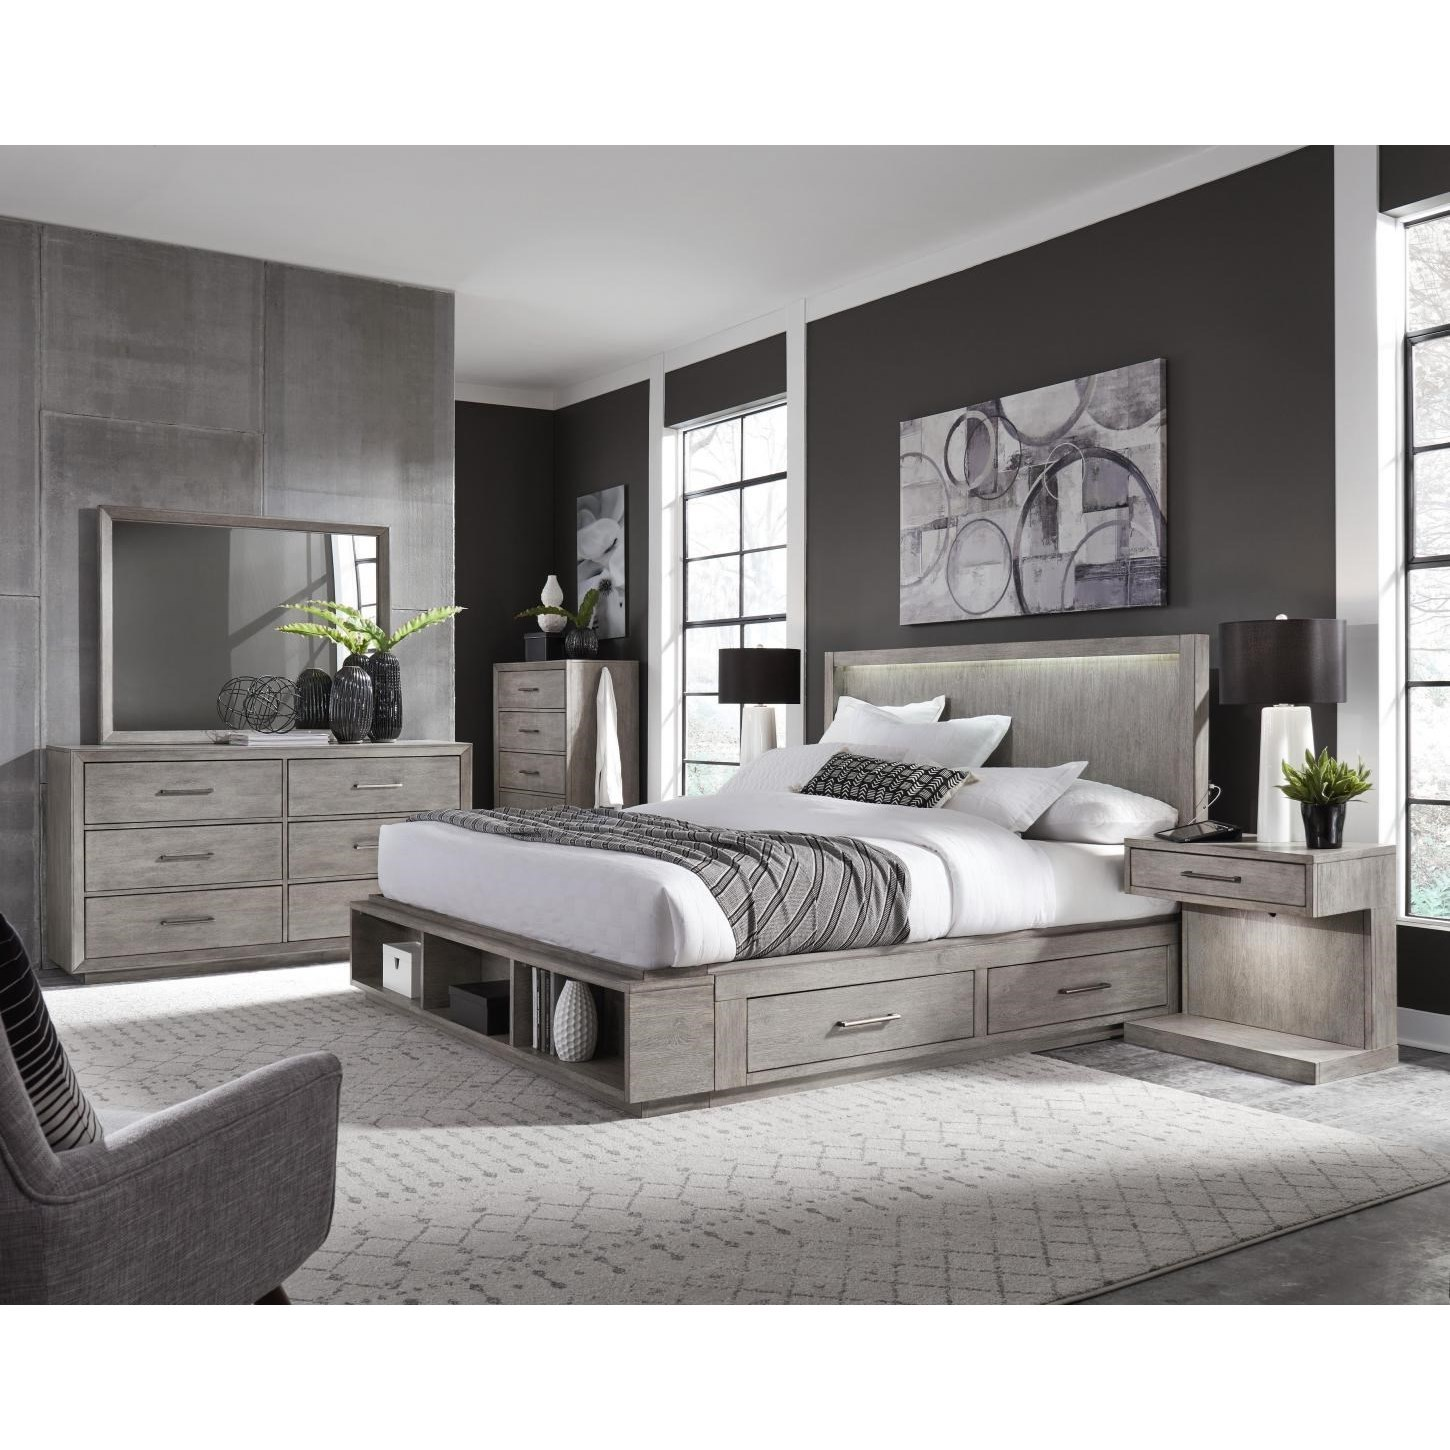 Platinum Queen Bedroom Group by Aspenhome at Stoney Creek Furniture